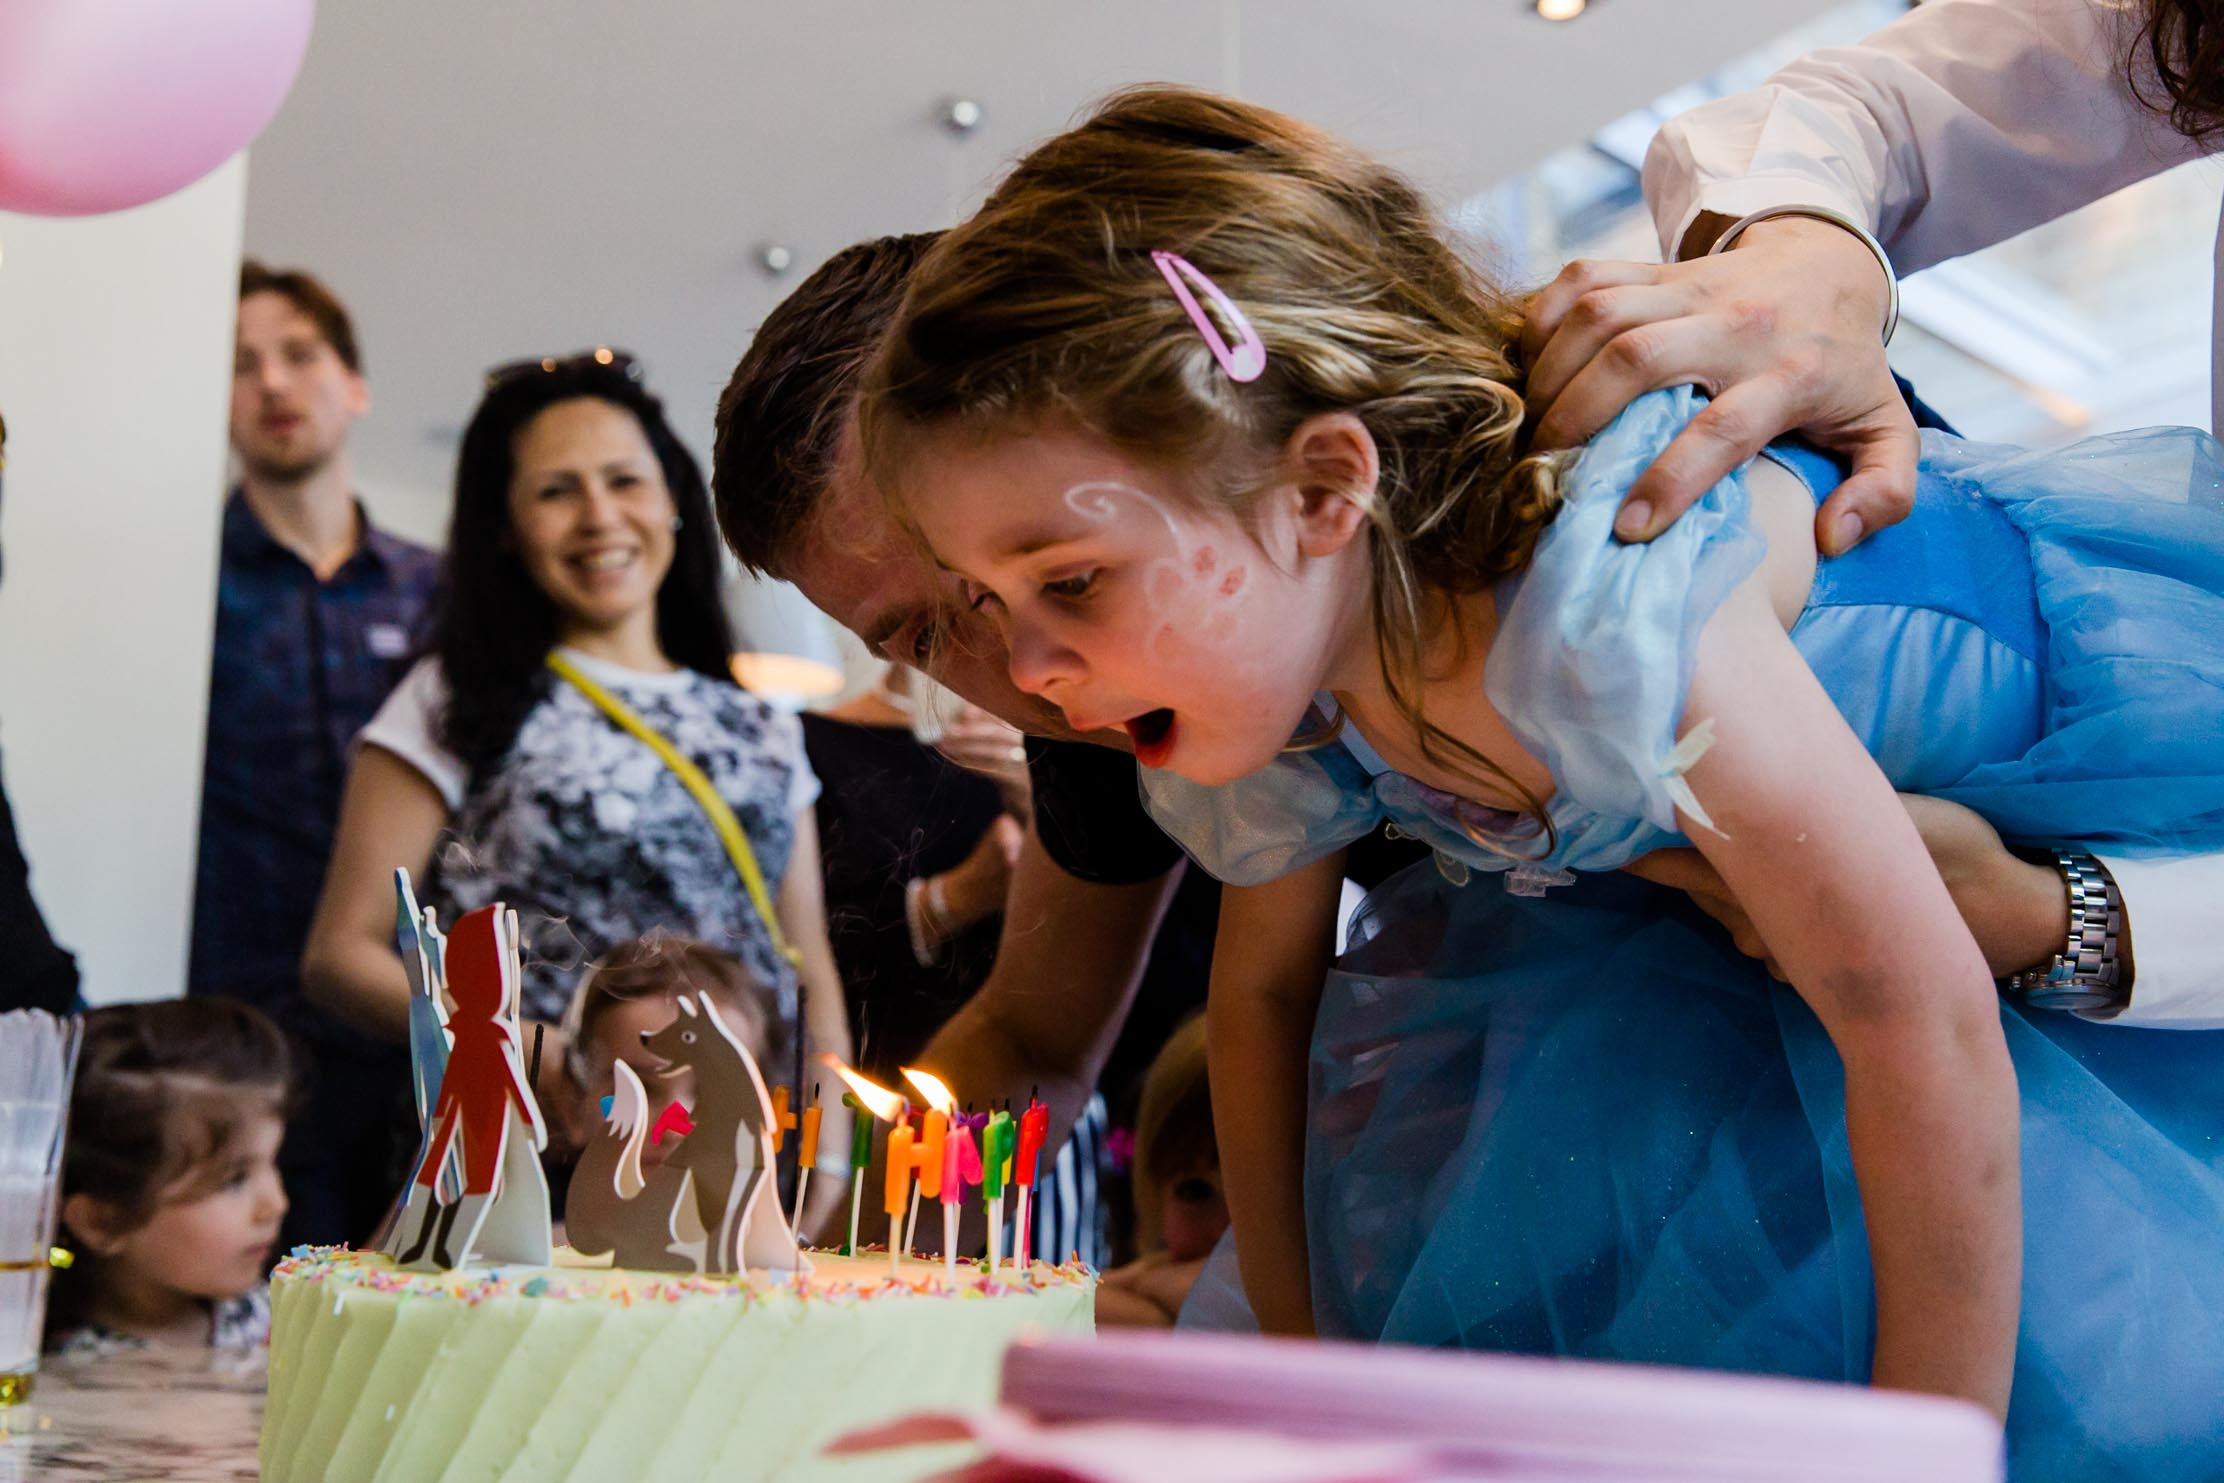 cake, candles, the money shot, child photography, party